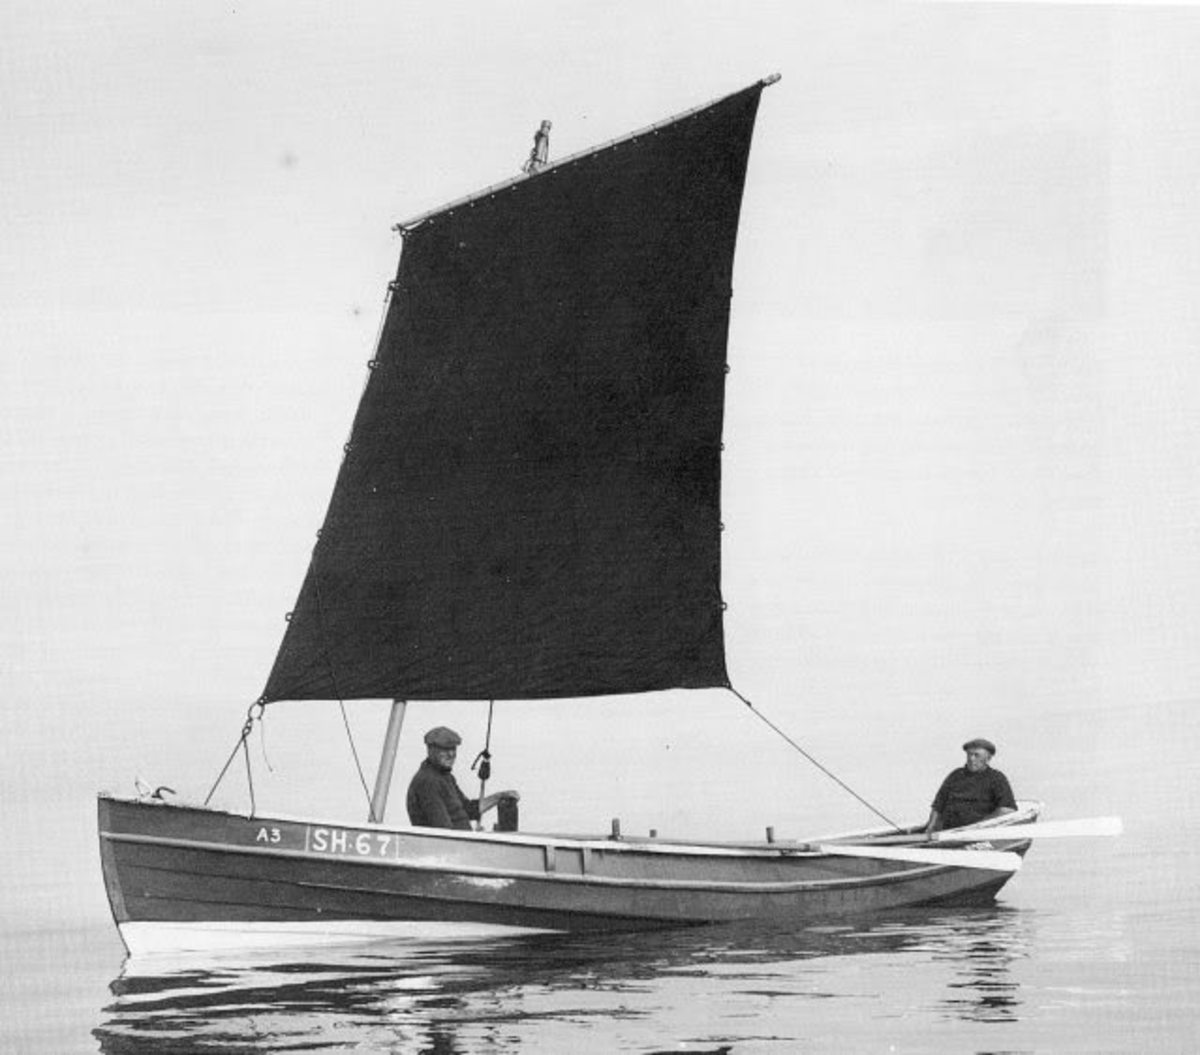 Early view of a coble under sail. These vessels were engine powered from post-WWII years